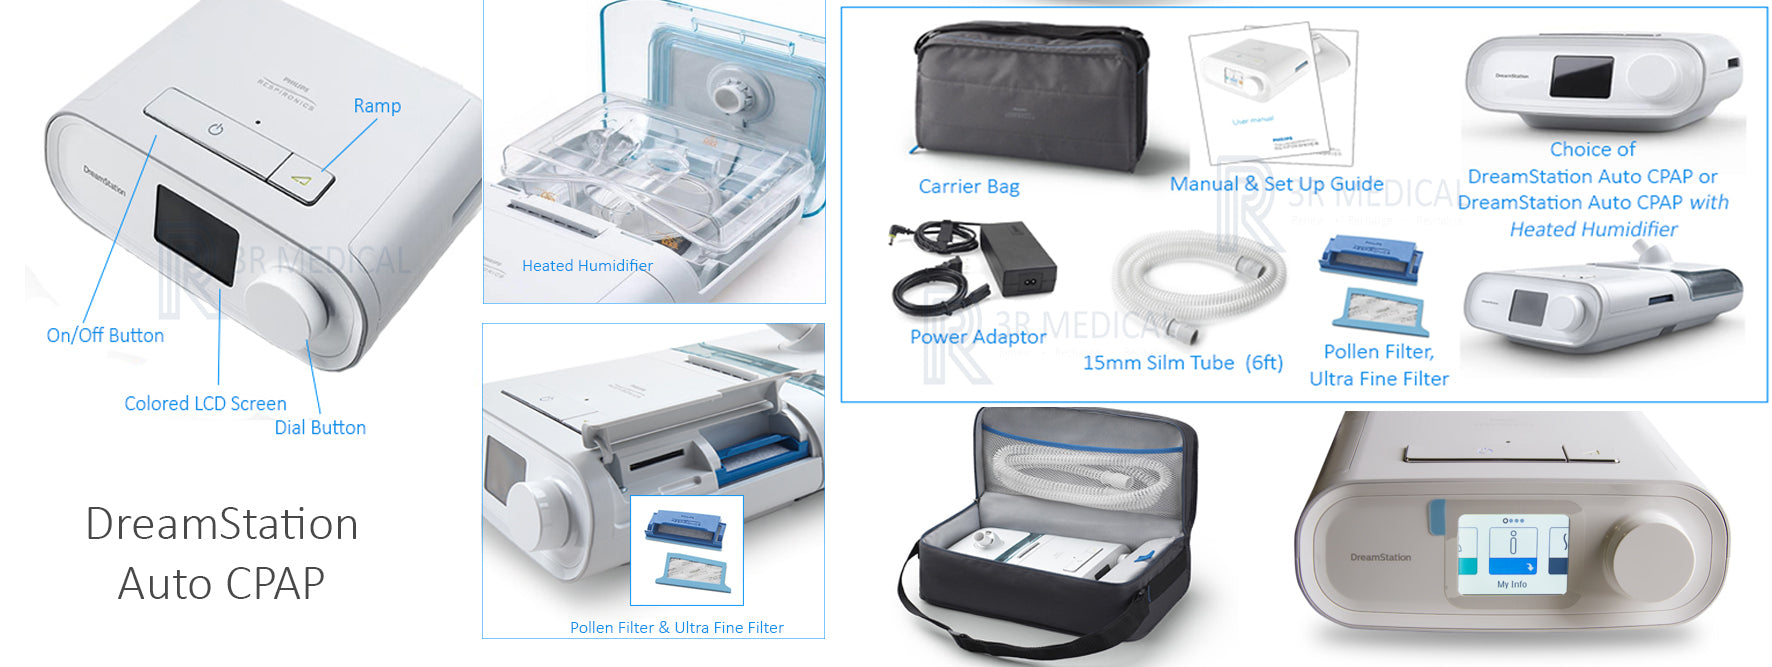 Dreamstation Auto Cpap Philips Singapore 3r Medical